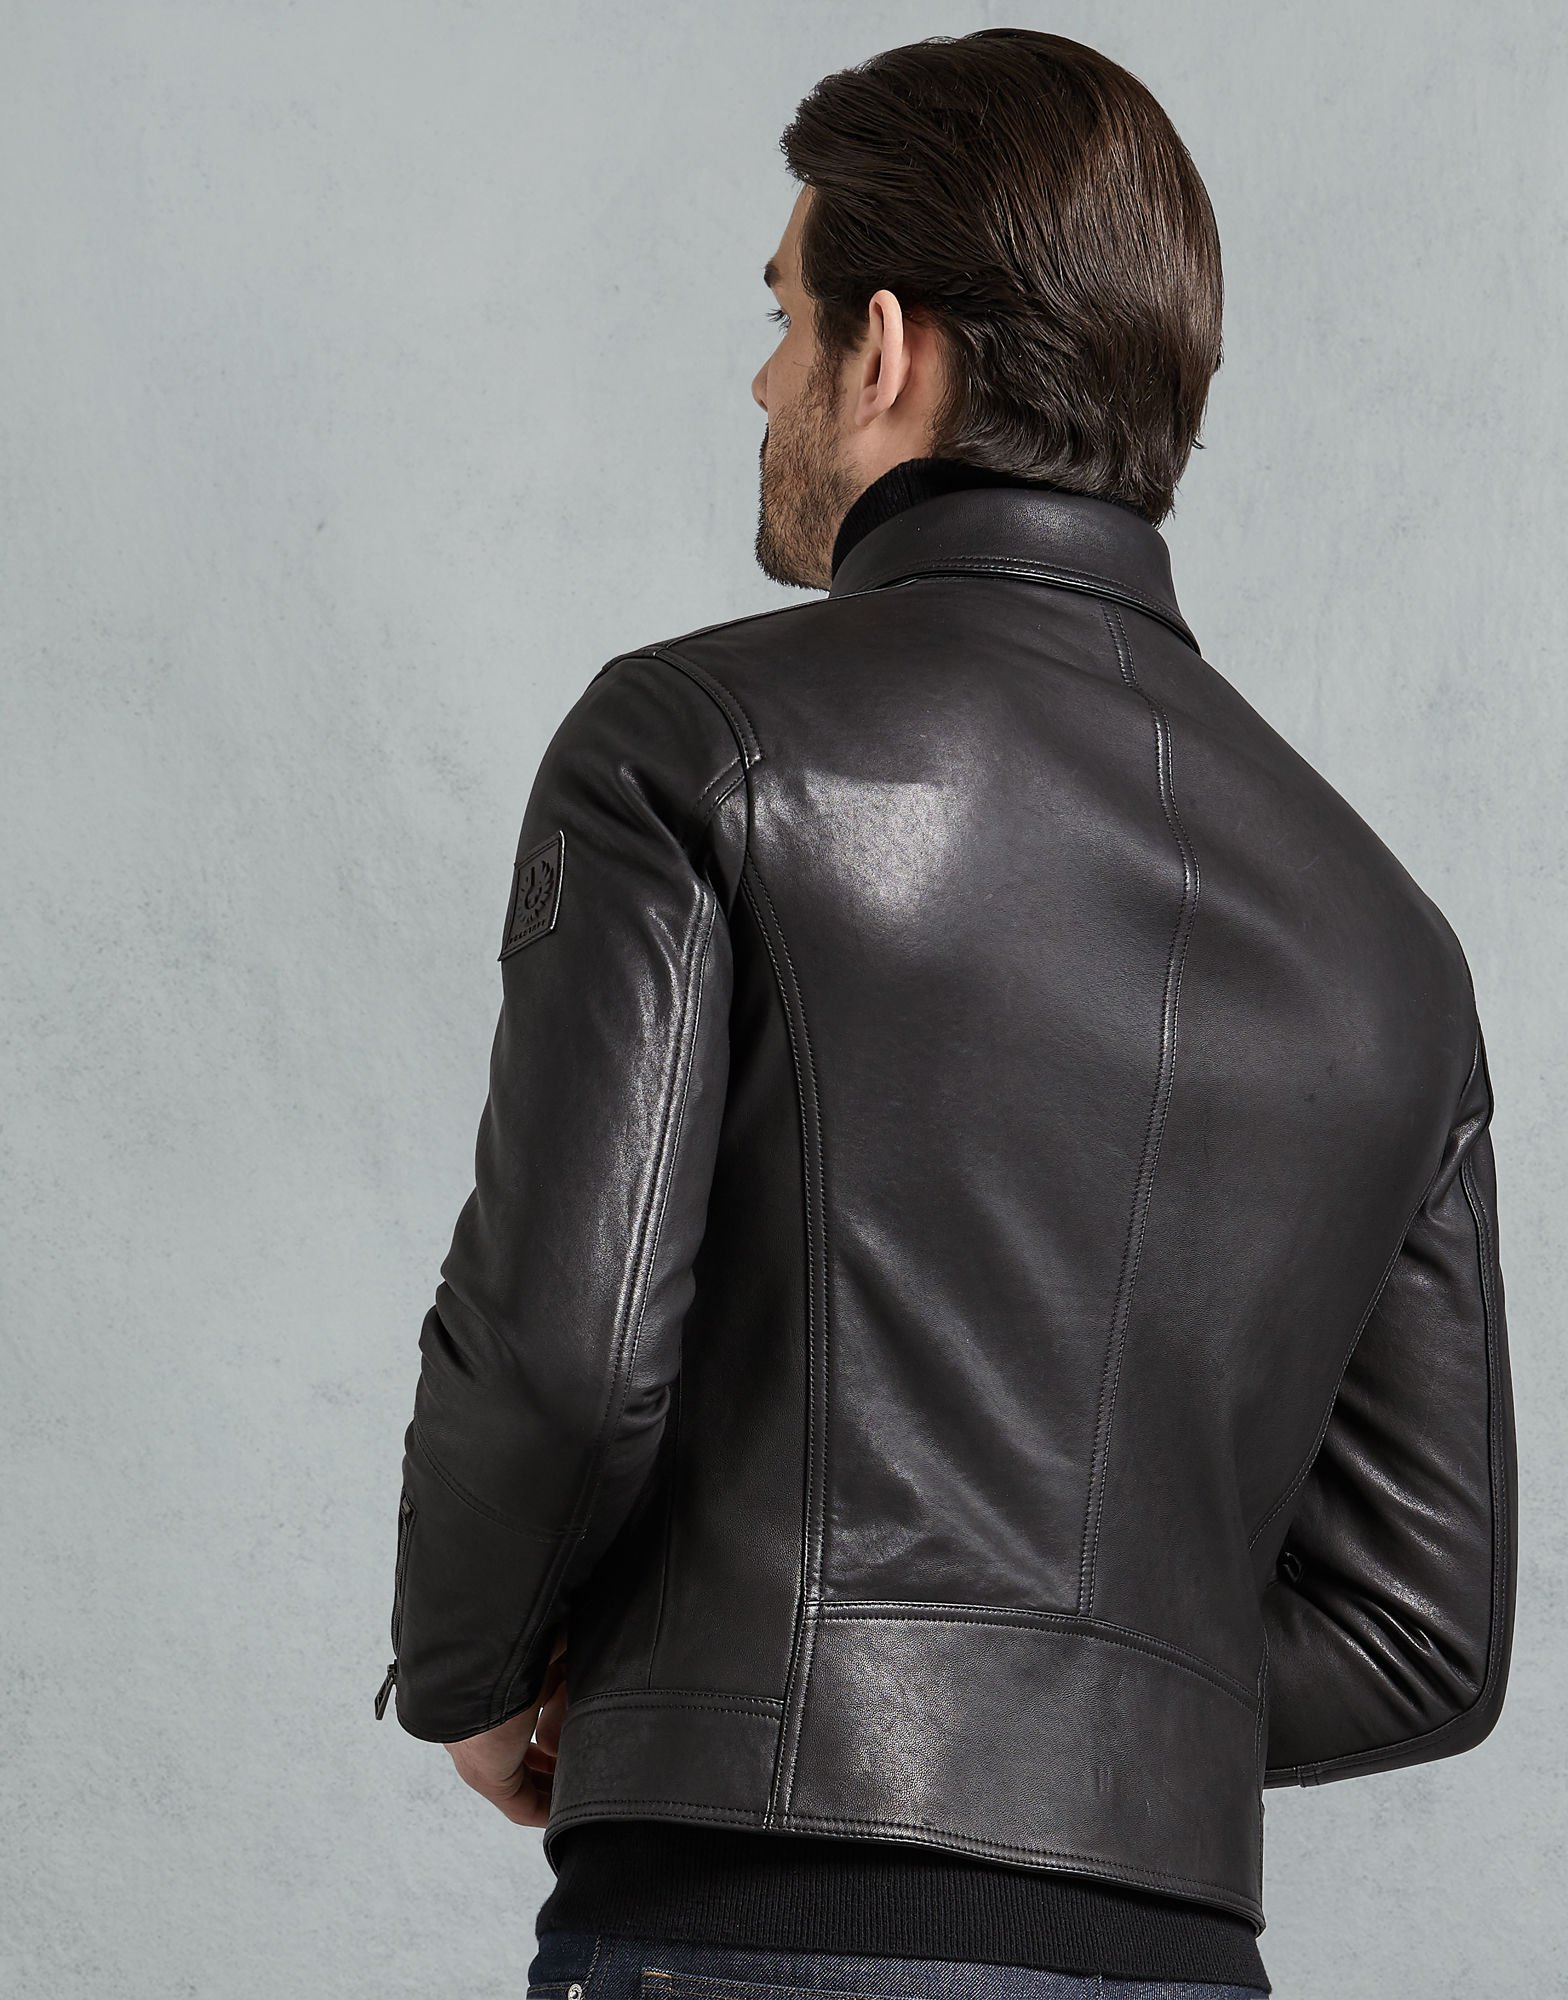 Leather Jackets | Mens Leather Jackets | Leather Jackets For Men | Belstaff  US